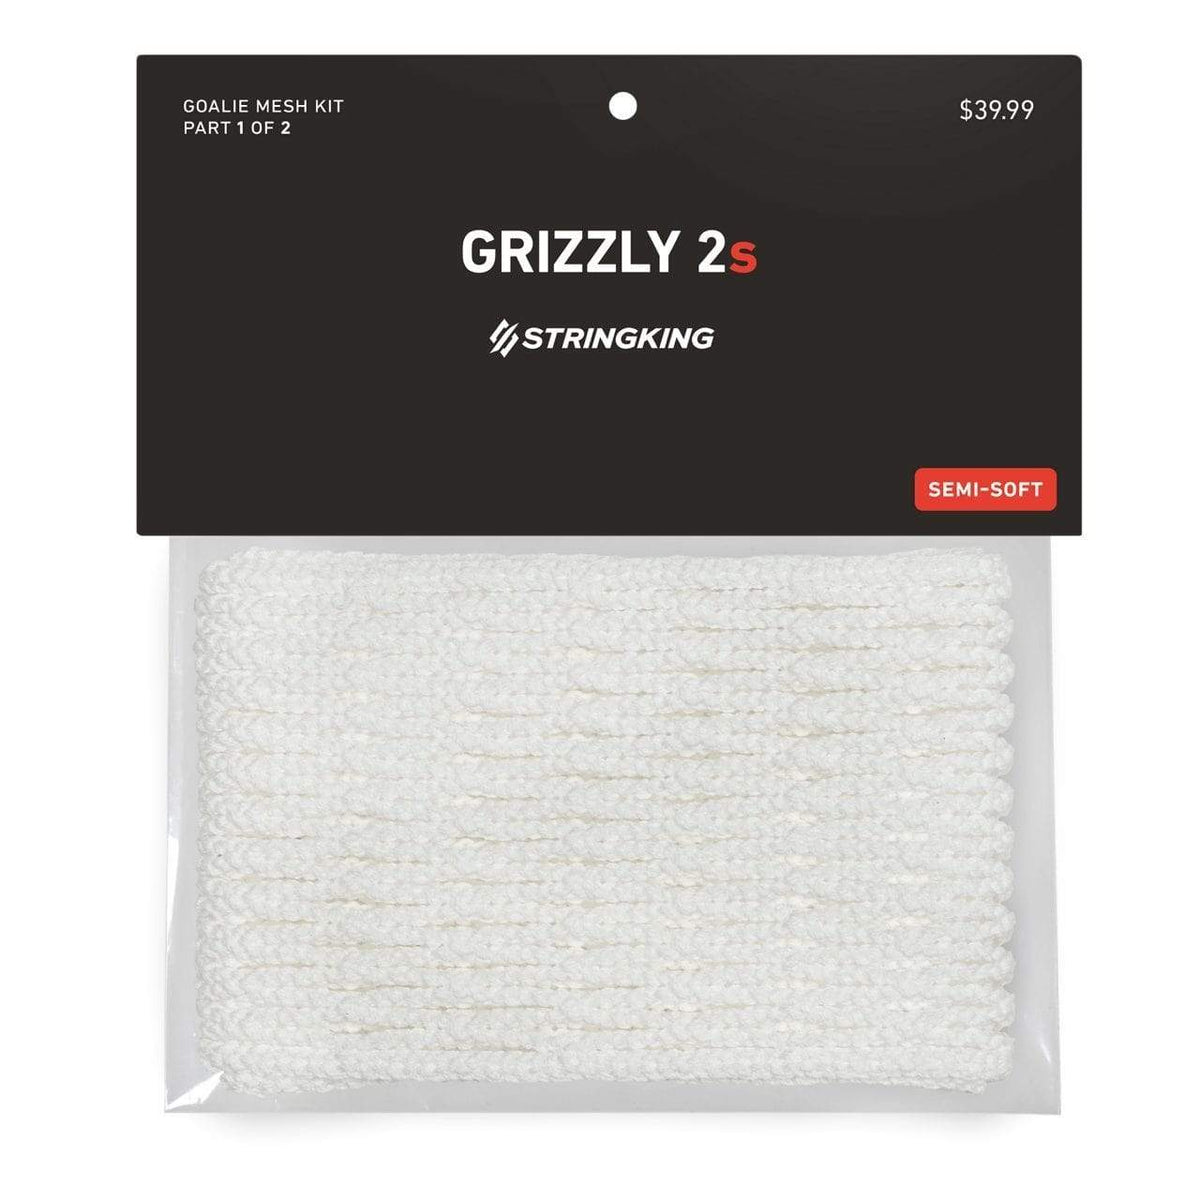 StringKing Grizzly 2s Goalie Lacrosse Mesh